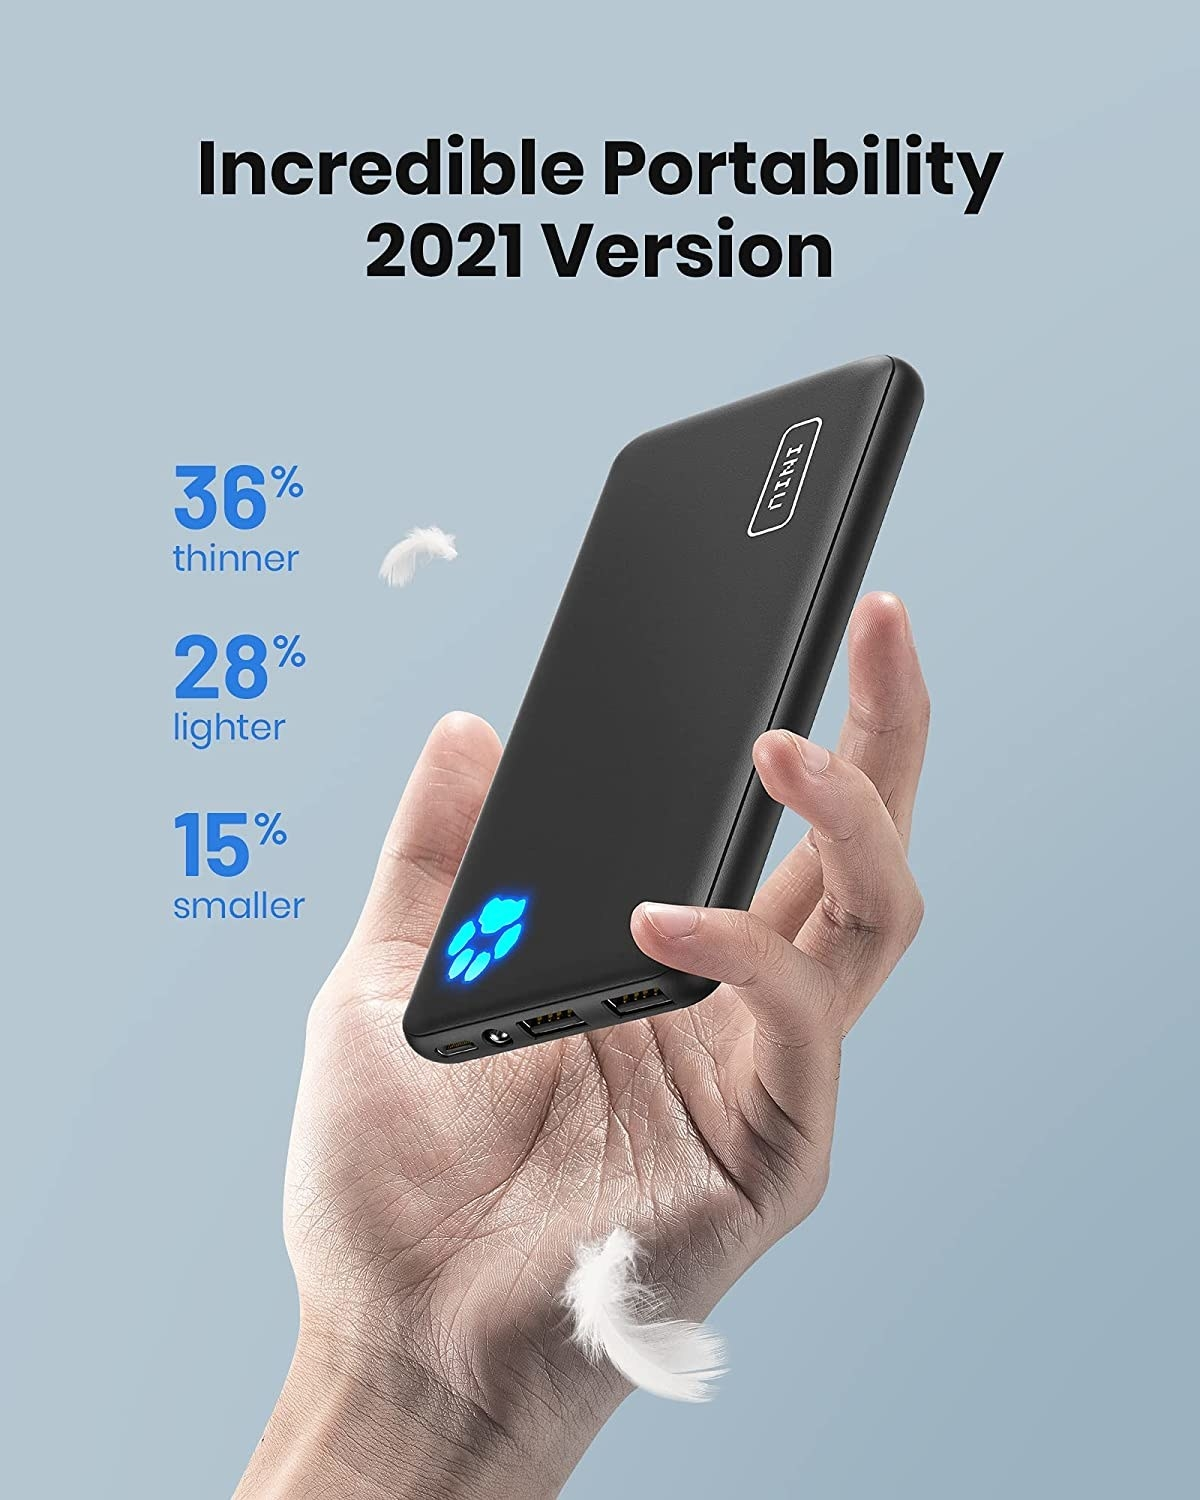 The 2021 version of the bank, which is 15% smaller, 28% lighter, and 36% thinner